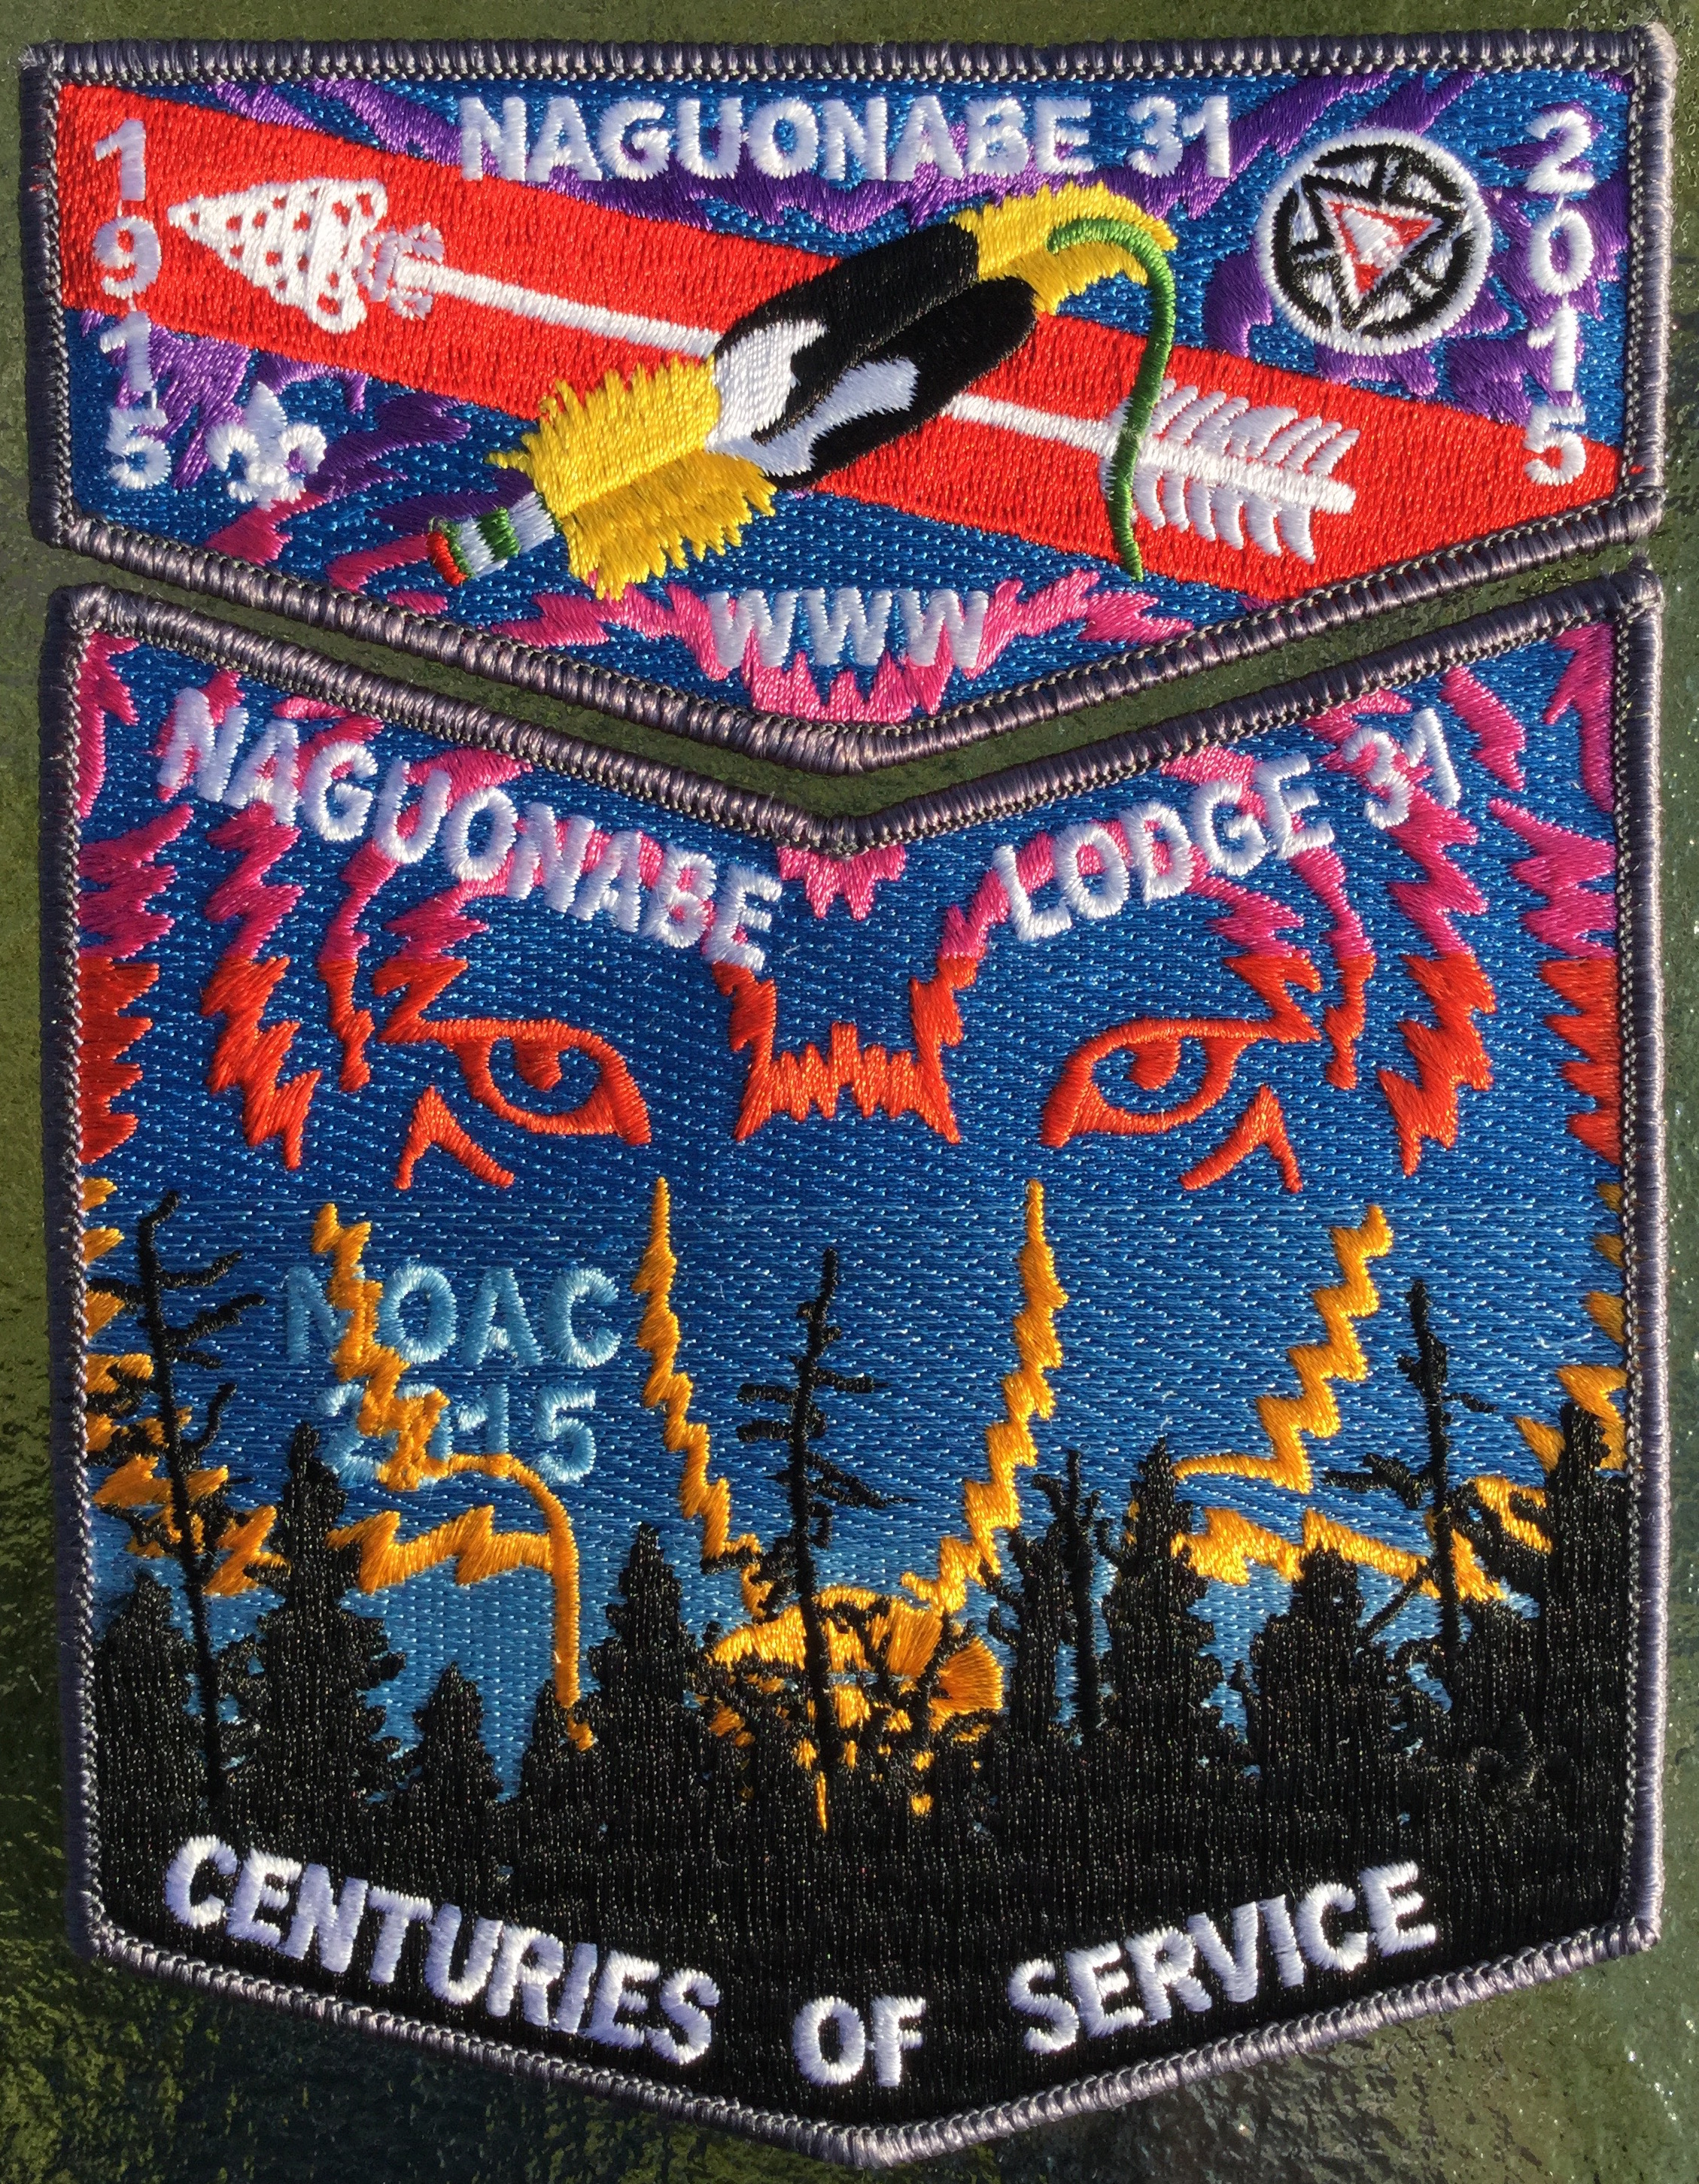 2015 Naguonabe Lodge NOAC Patch.